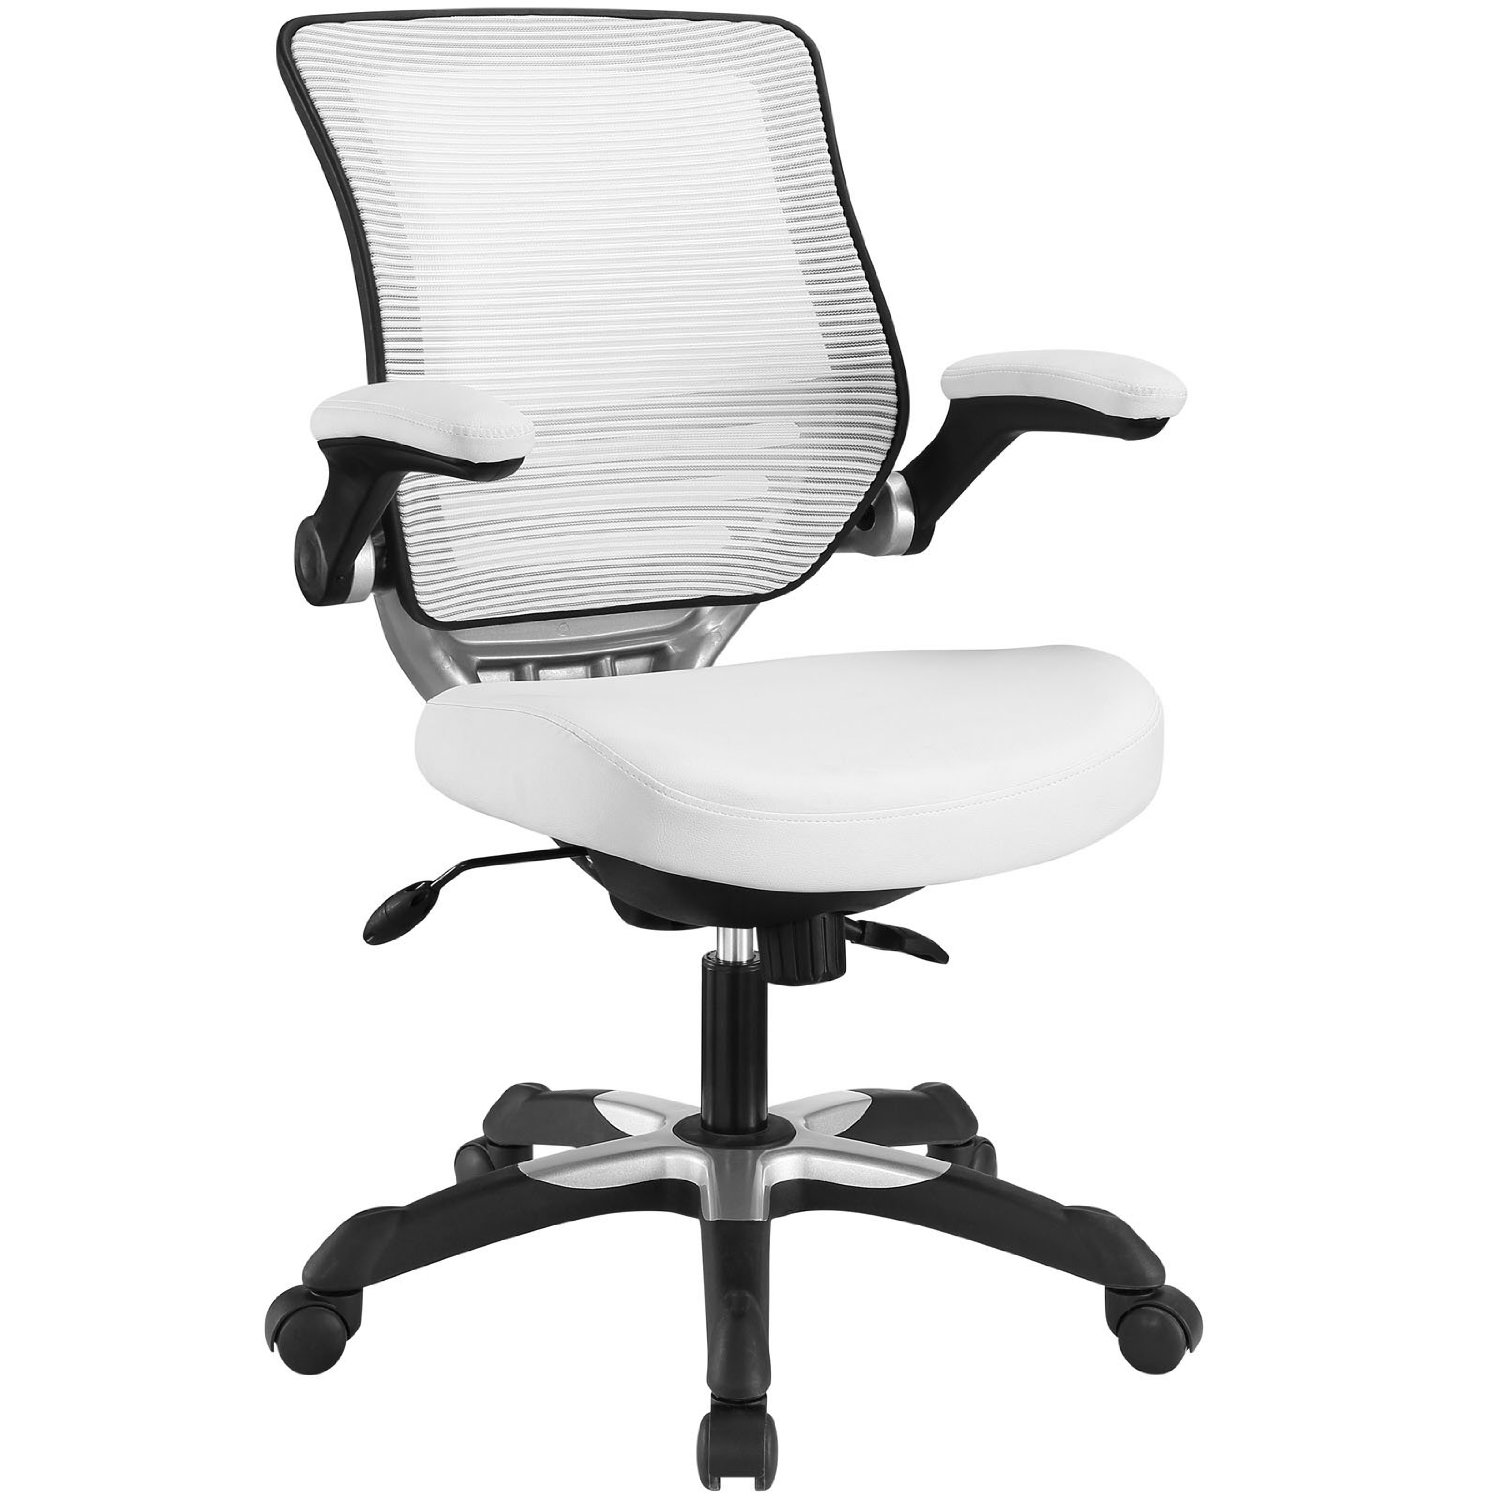 Best office chair 2016 - Lexmod Edge Office Chair